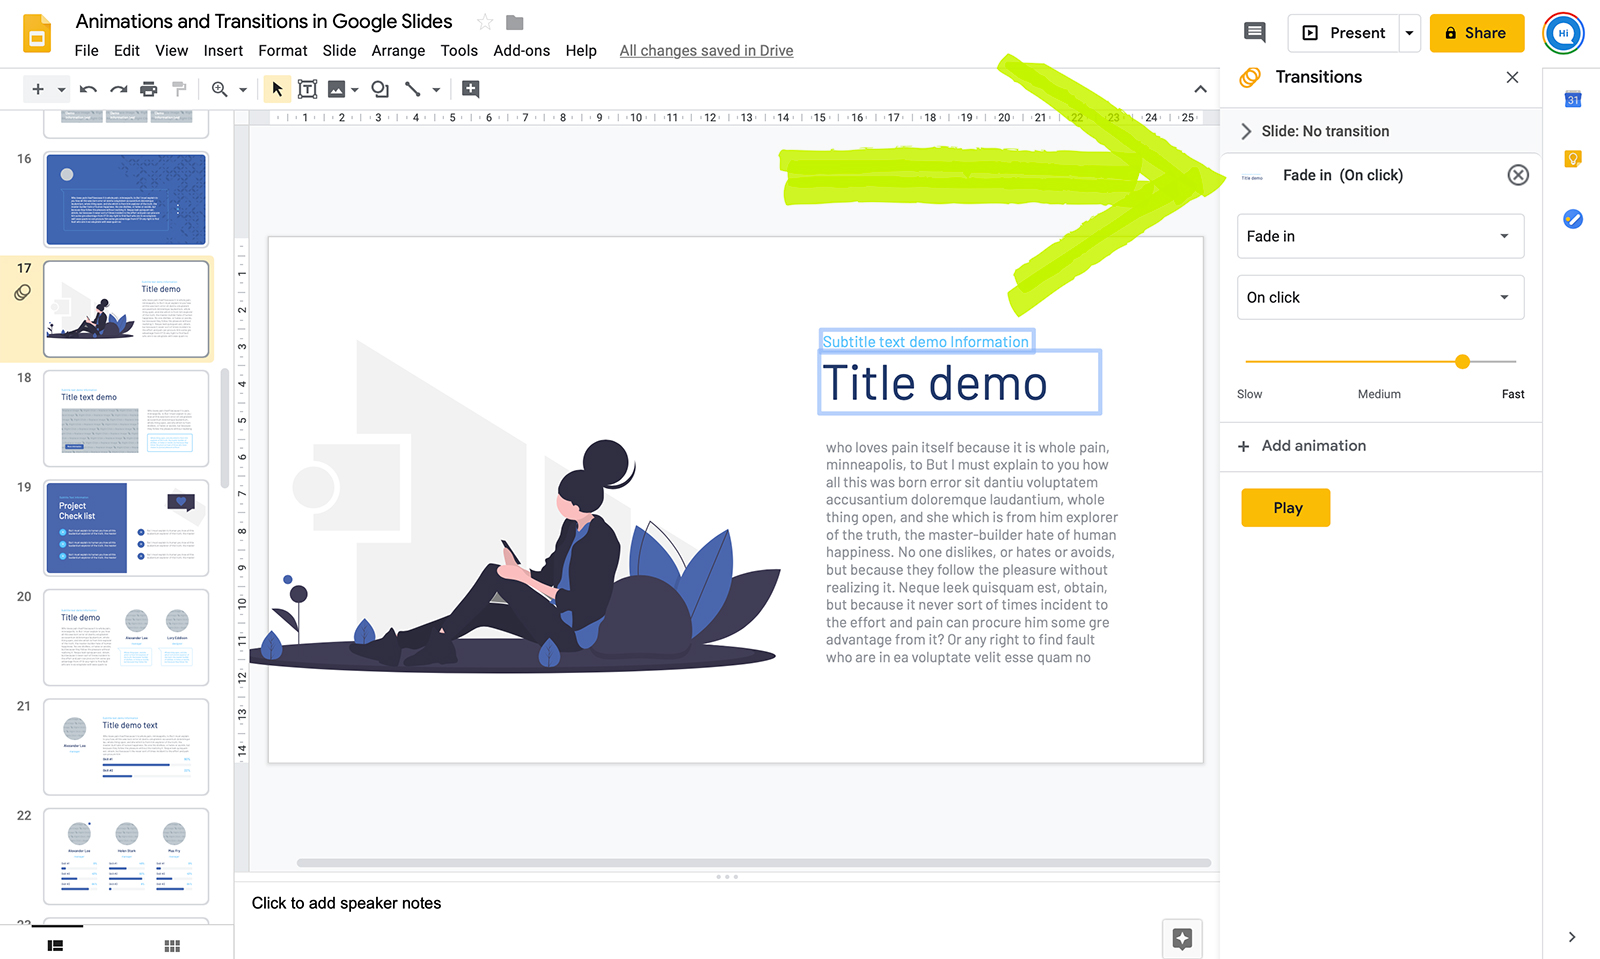 How to do animation in Google Slides